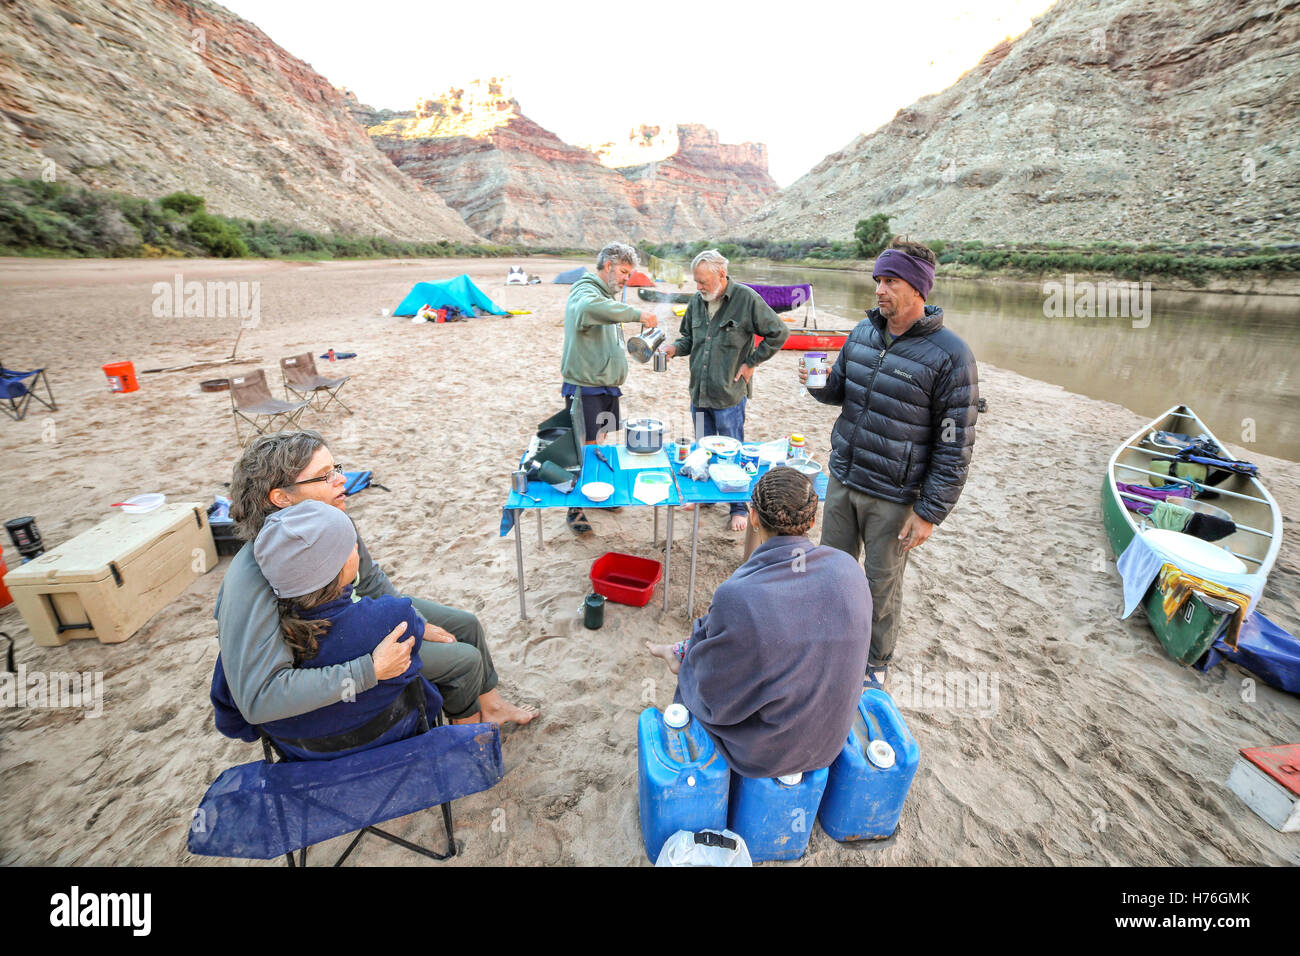 A colorful river trip kitchen on the Colorado River at the confluence of the Green River in Canyonland National - Stock Image